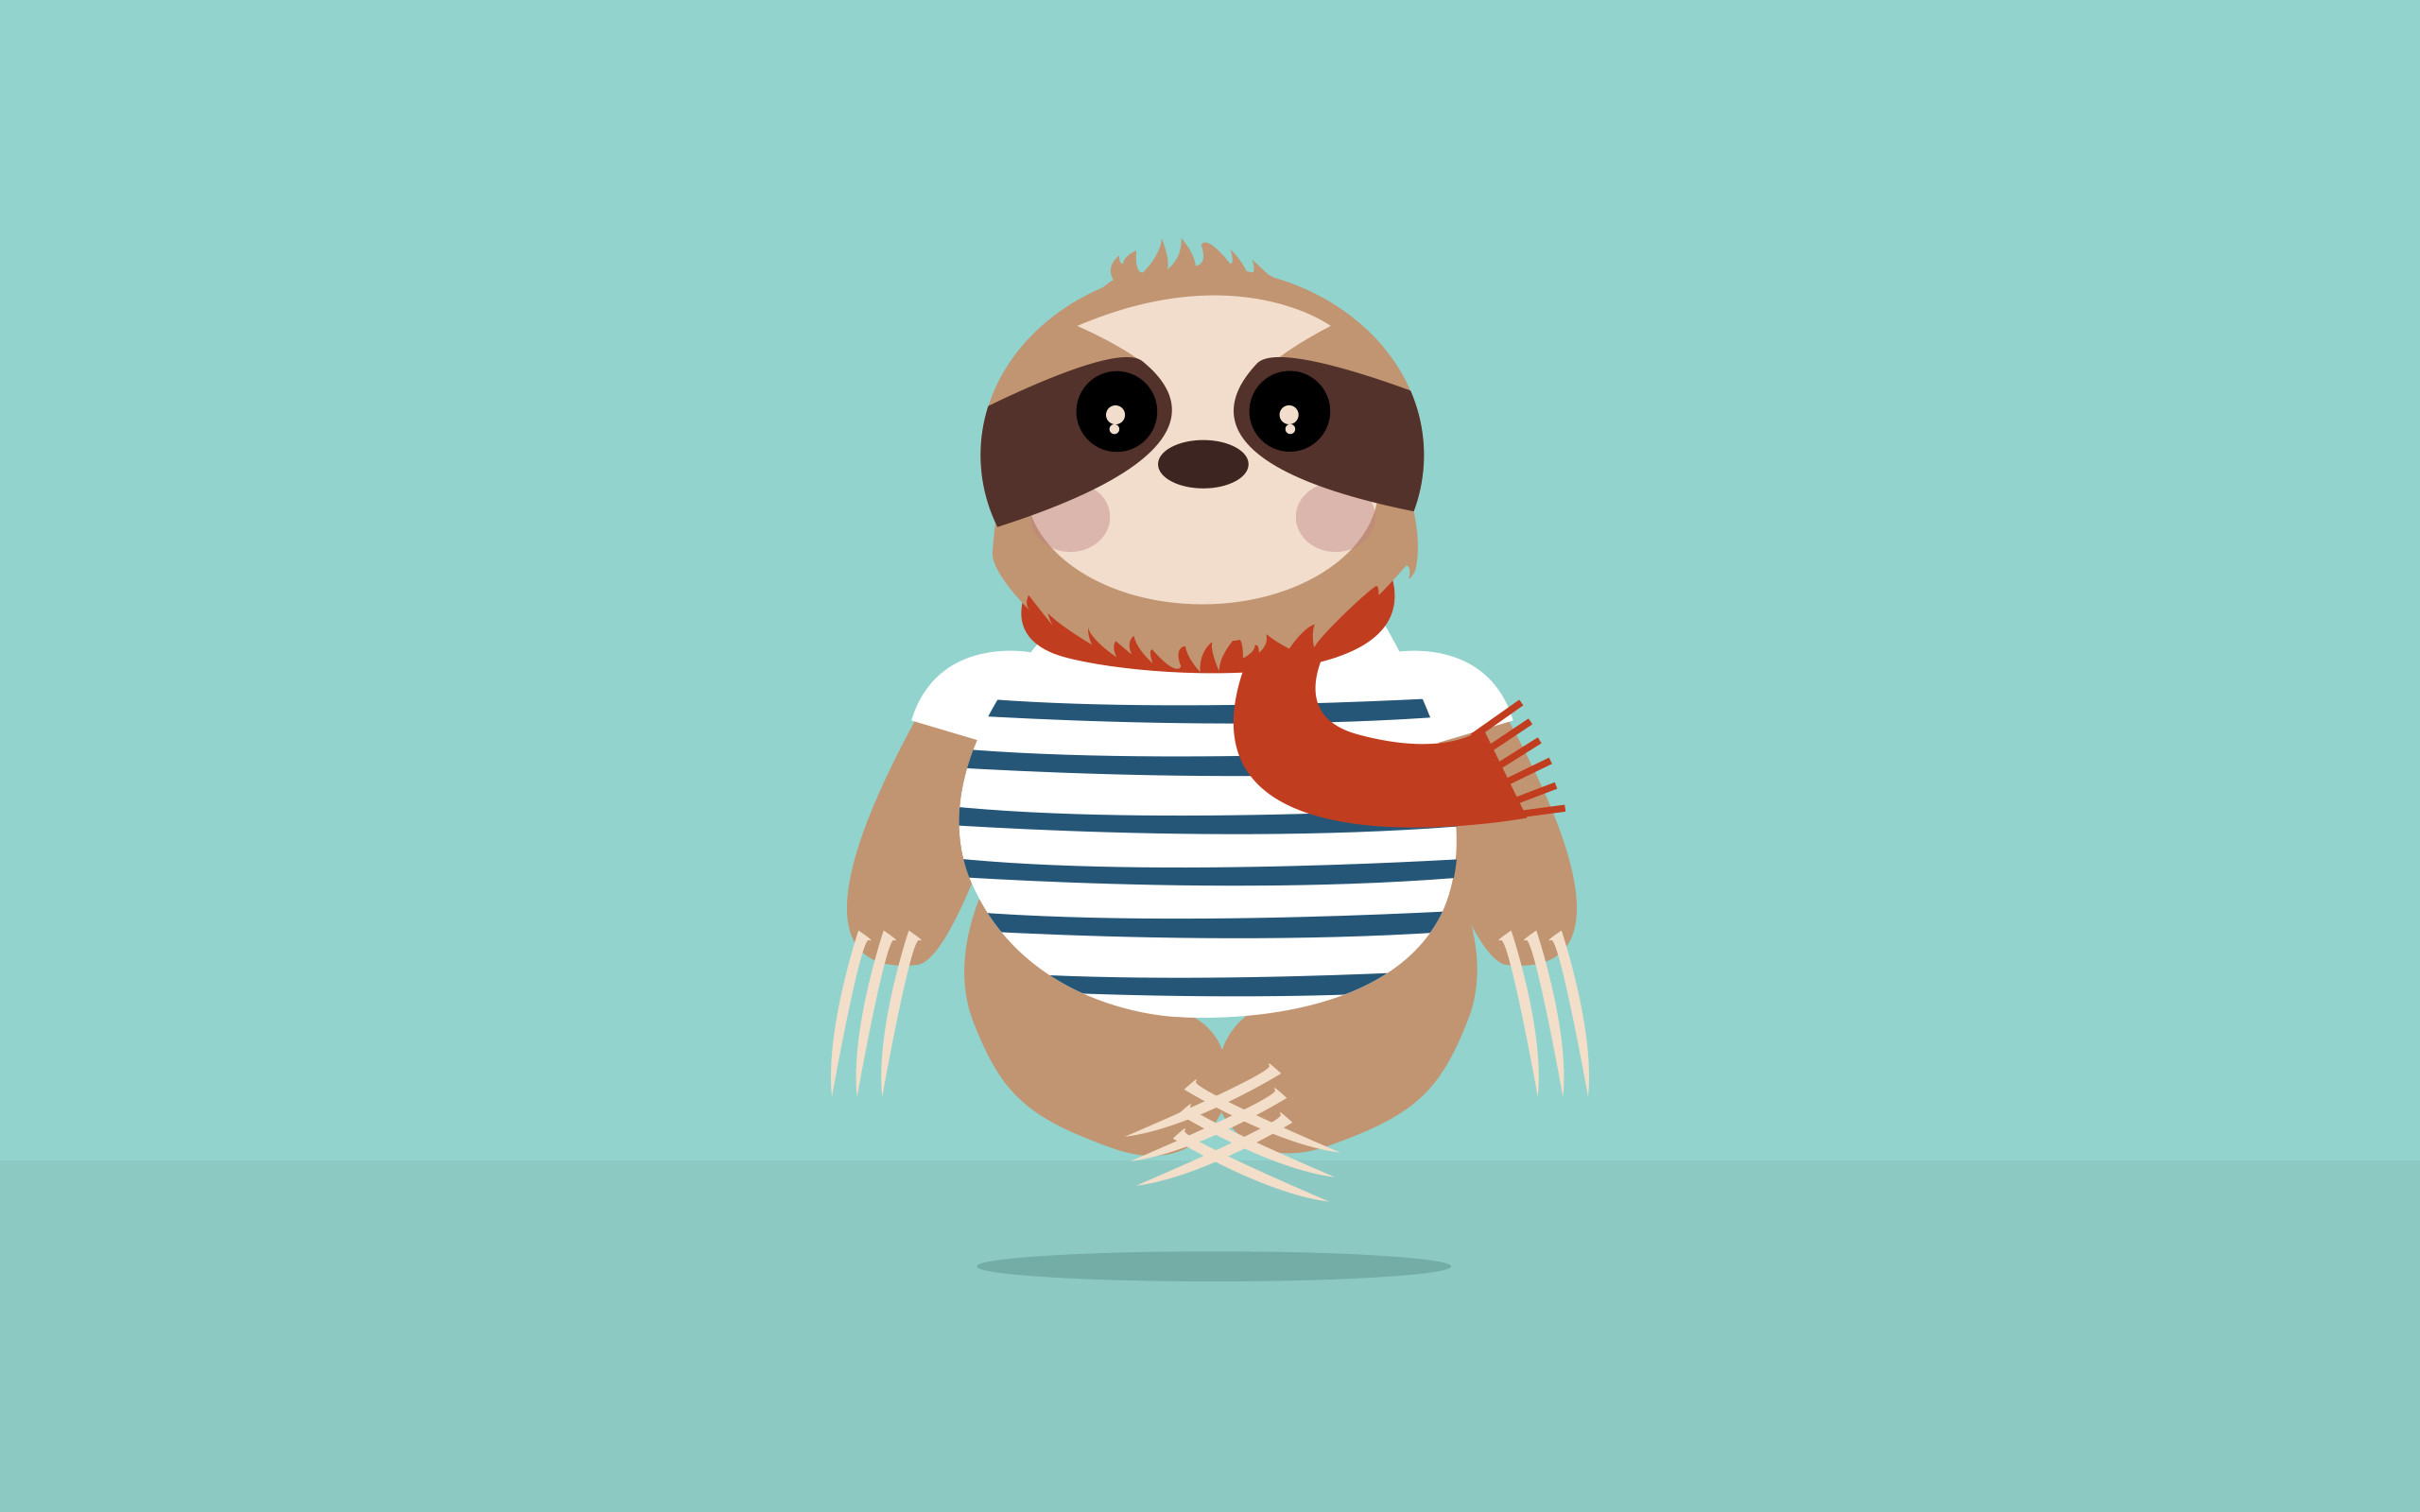 2560x1600 HD Sloth Images.